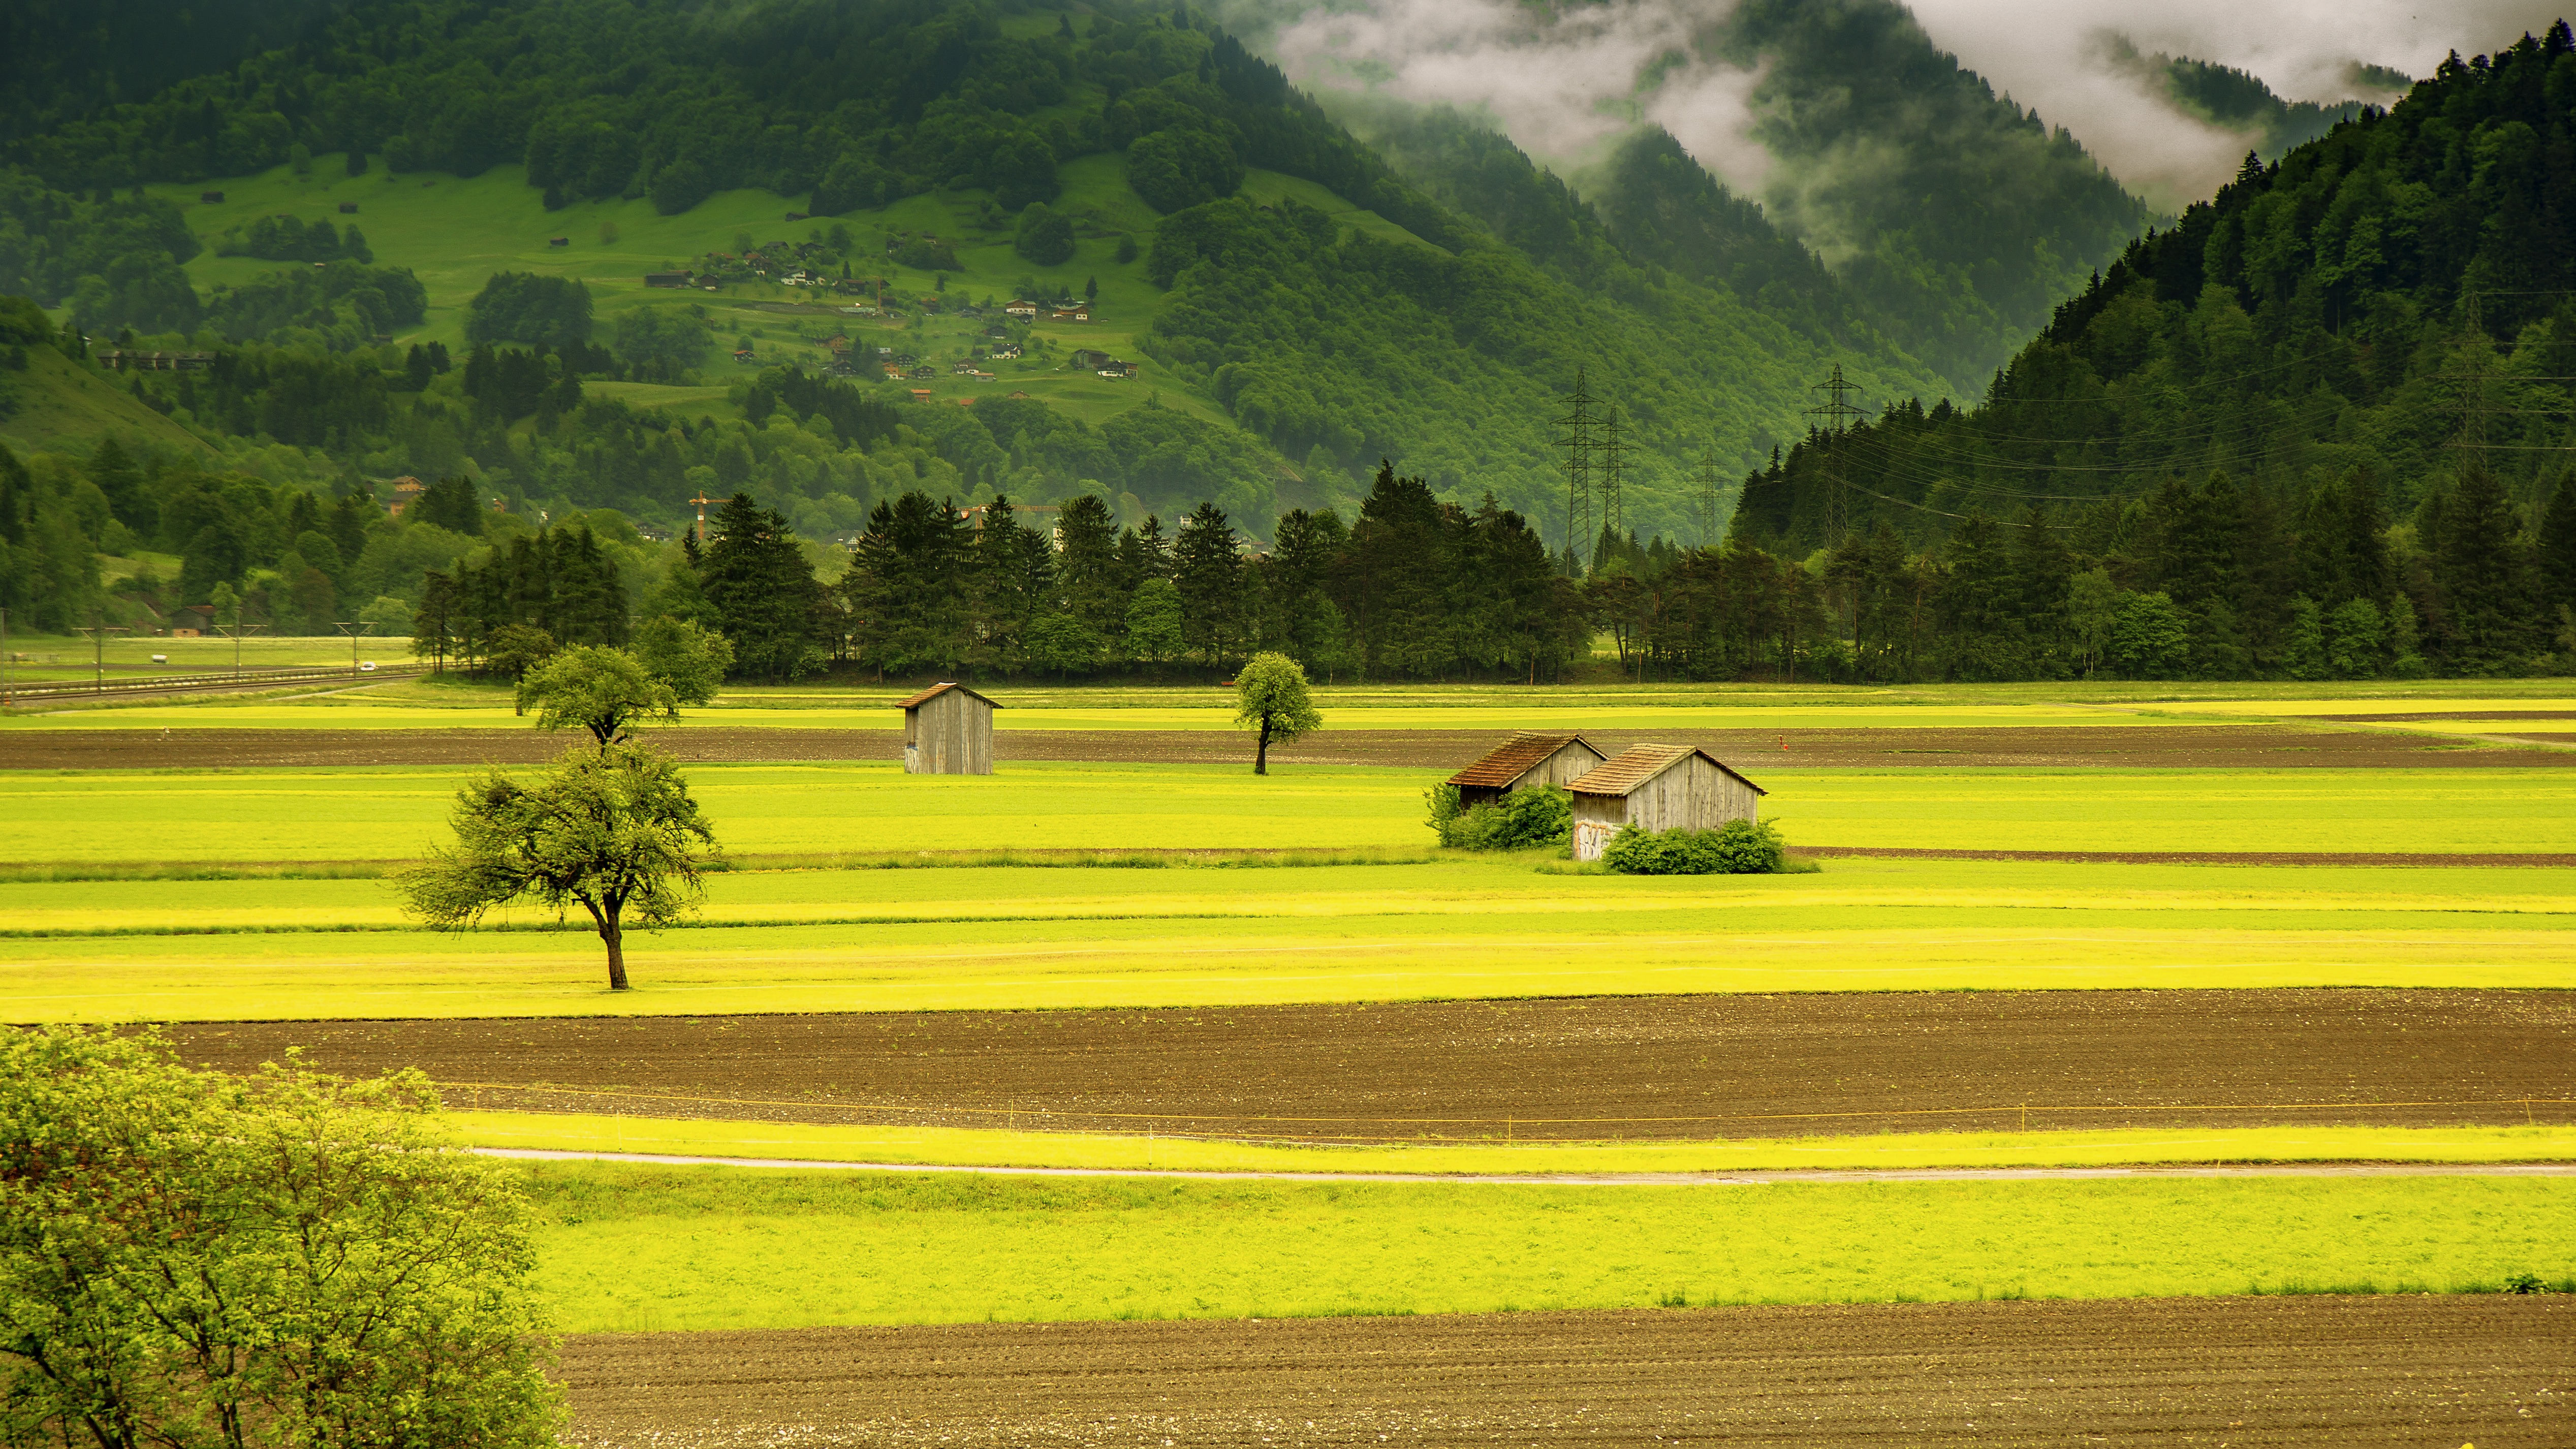 137916 download wallpaper Grass, Nature, Trees, Sky, Meadow screensavers and pictures for free